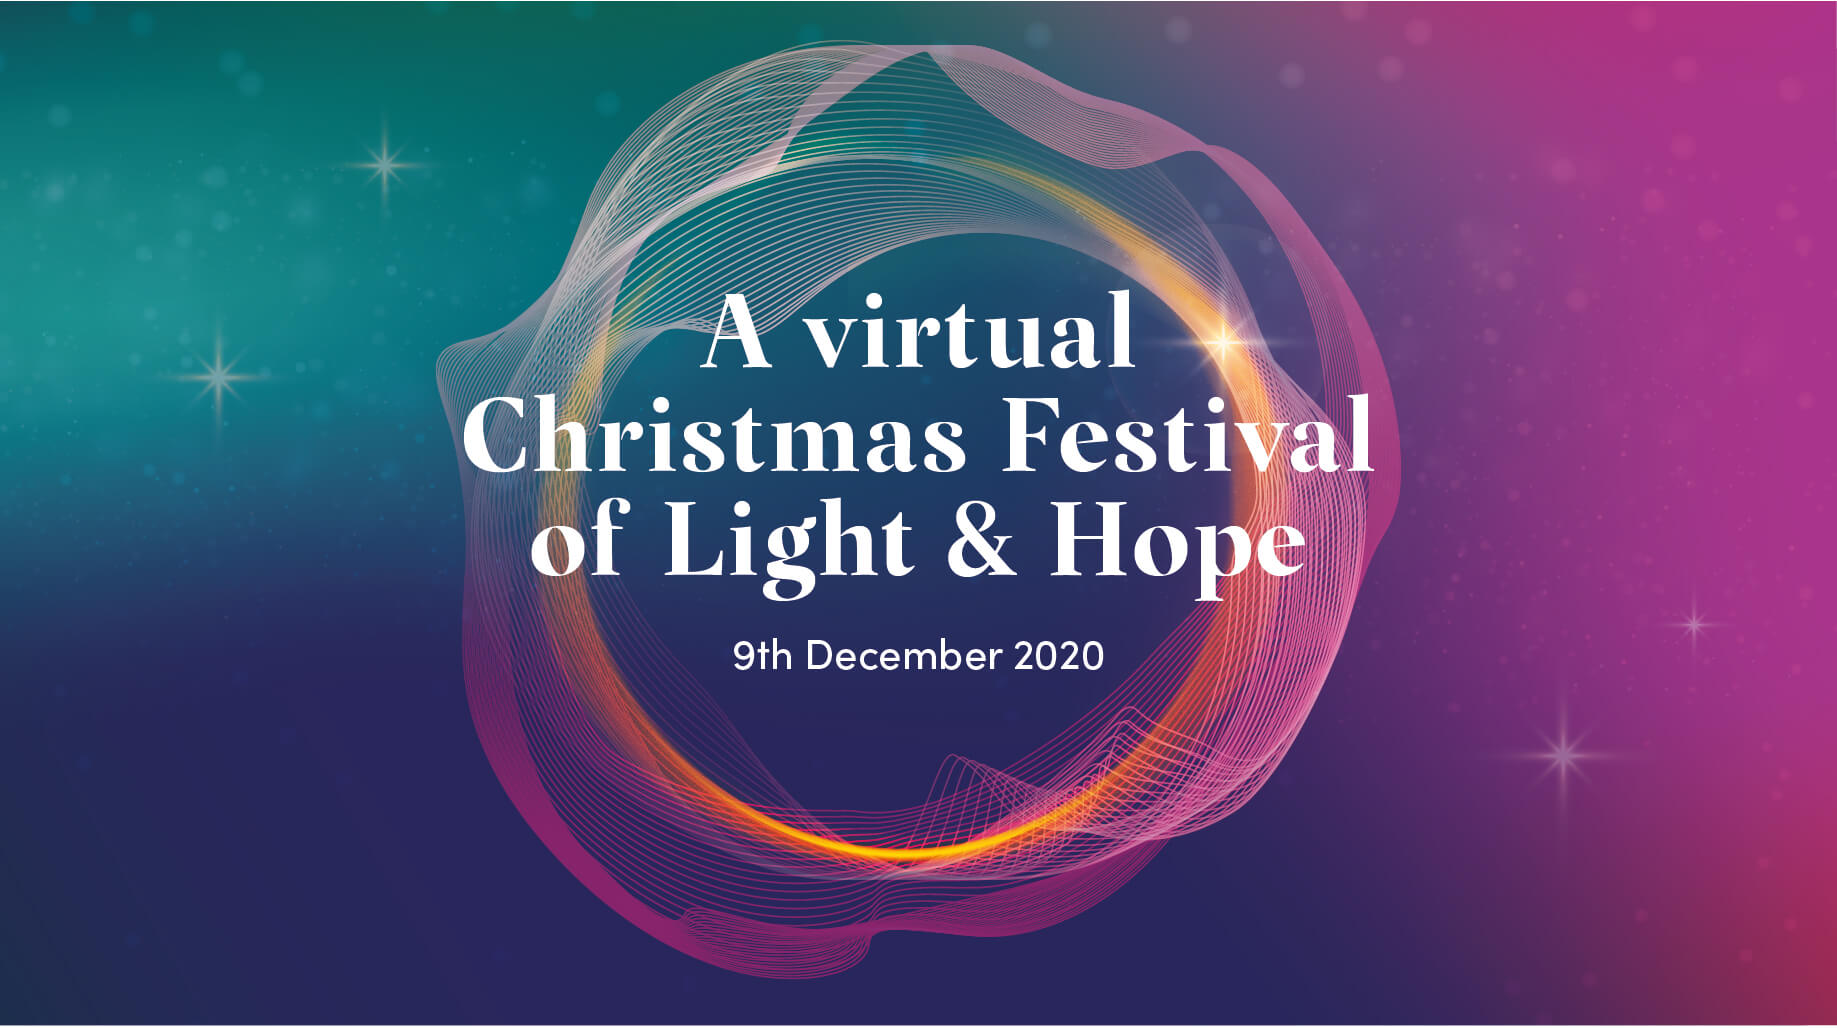 A virtual Christmas Festival of Light & Hope